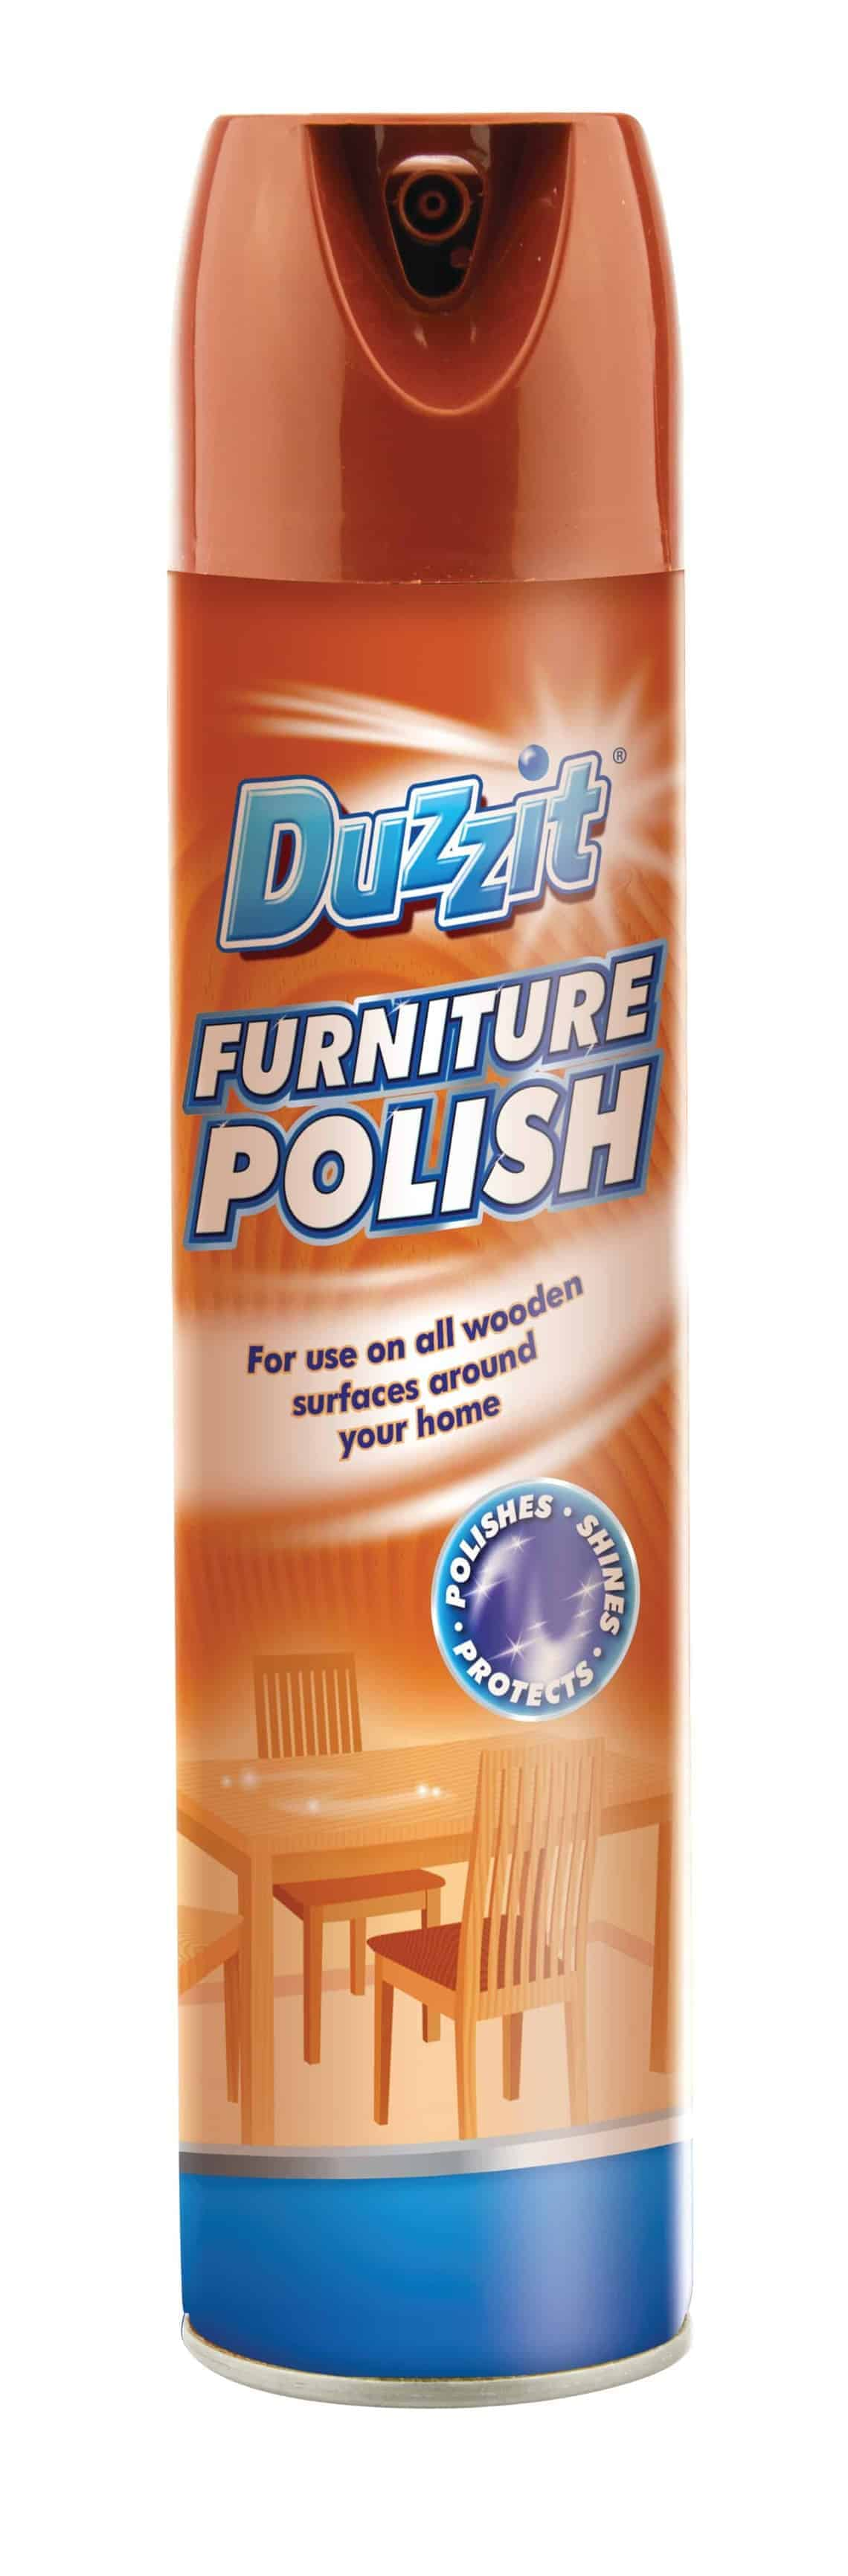 Duzzit Furniture Polish